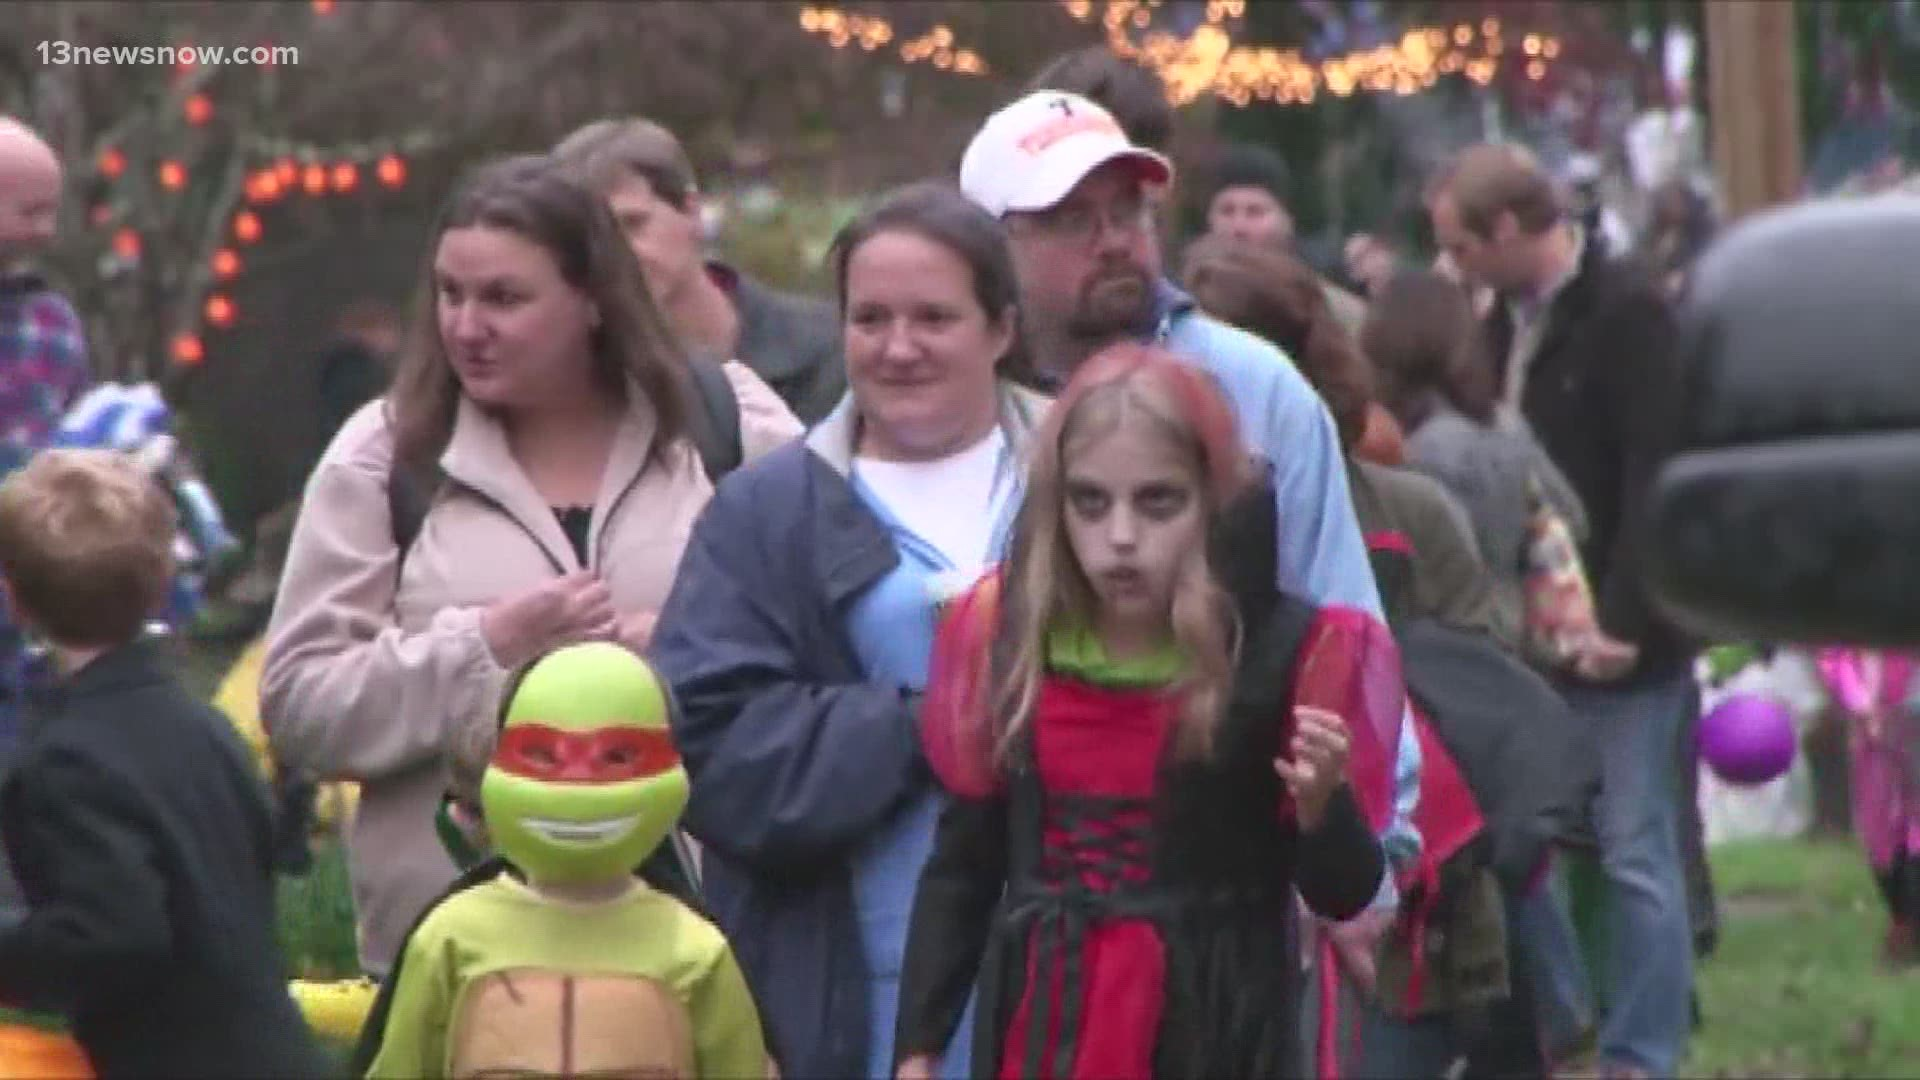 Sacramento Halloween 2020 Events Is Halloween canceled this year? | abc10.com